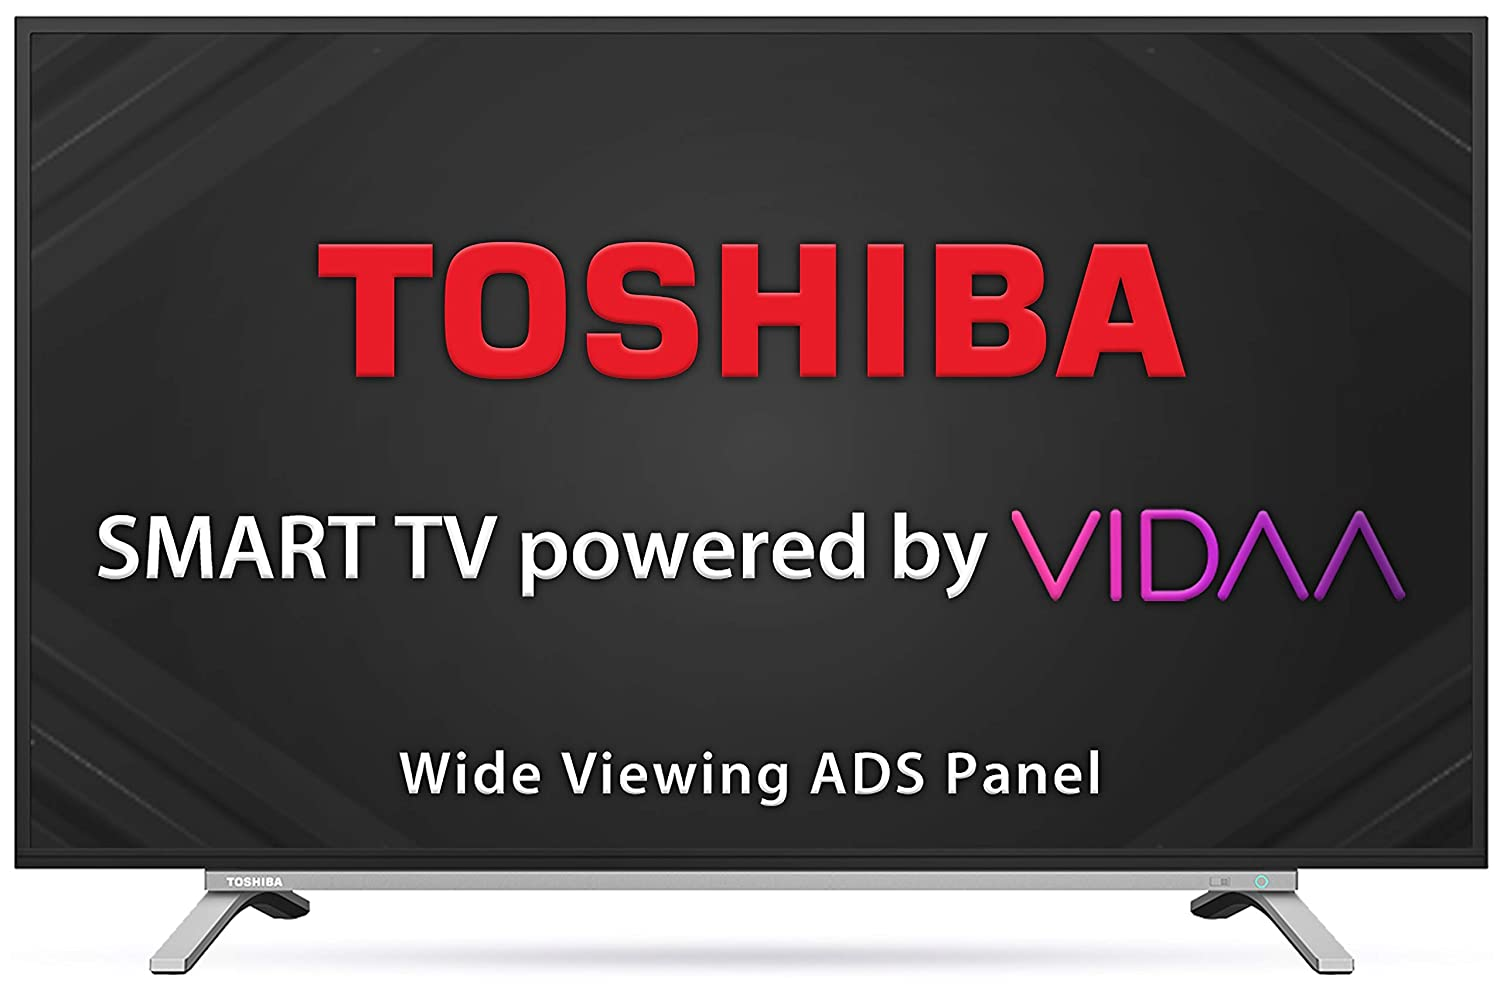 Toshiba 108 cm (43 inches) Vidaa OS Series Full HD Smart ADS LED TV 43L5050 (Black) (2020 Model)